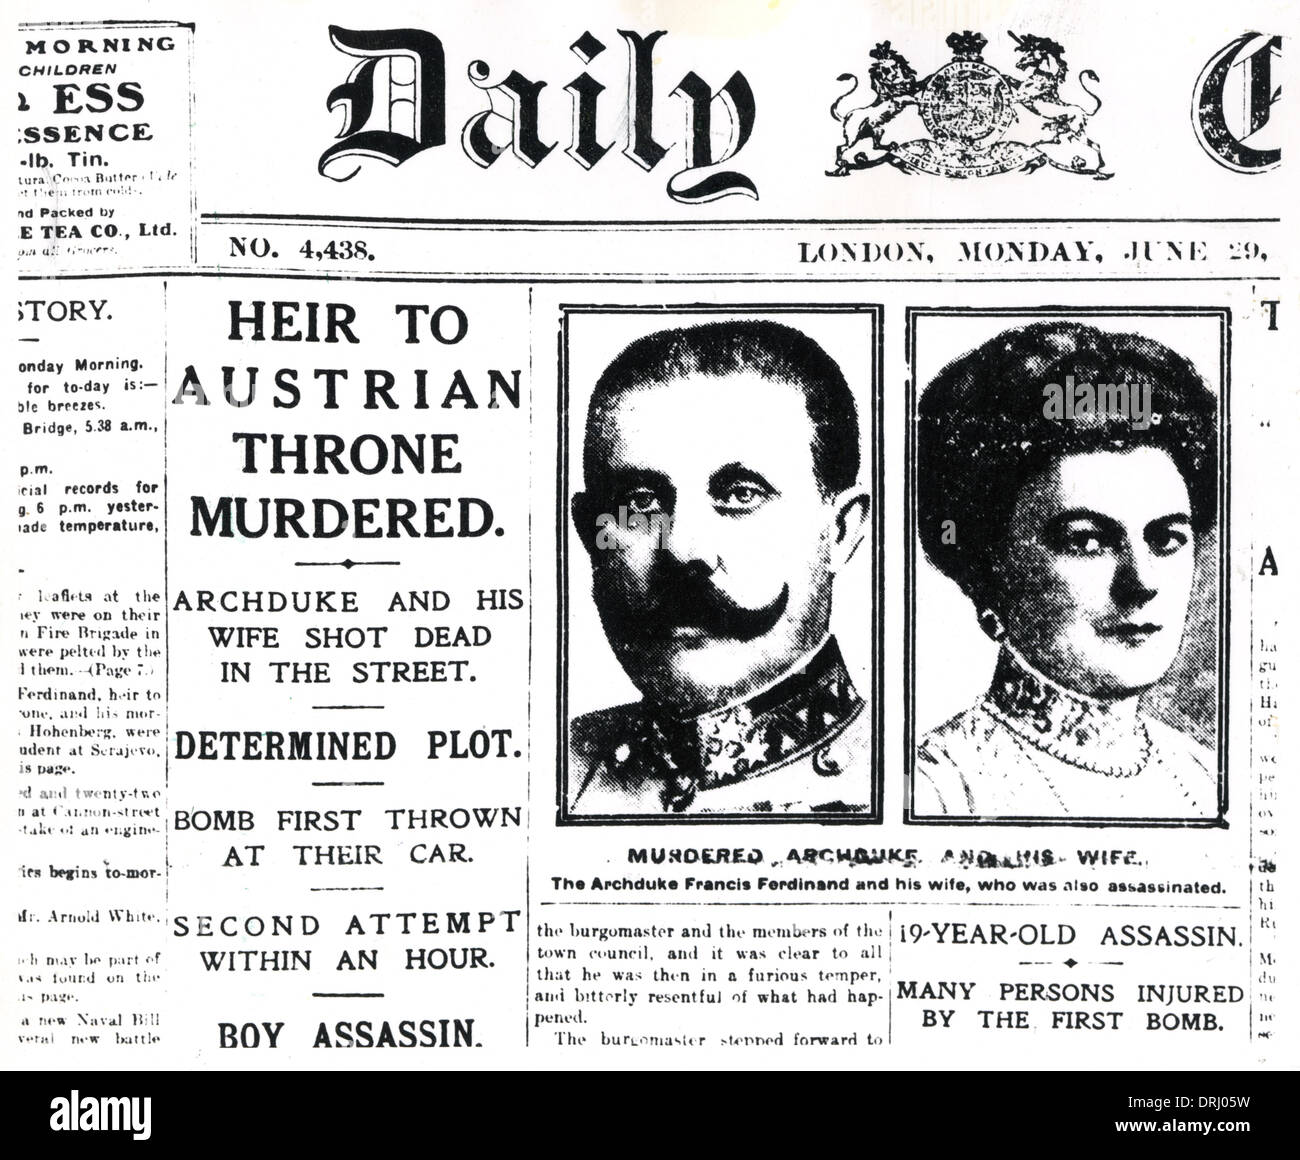 account of the life and attempts of assassinations of the arch duke francis ferdinand Assassination of archduke franz ferdinand of the black hand to start more assassination attempts assassination of franz ferdinand the most important.